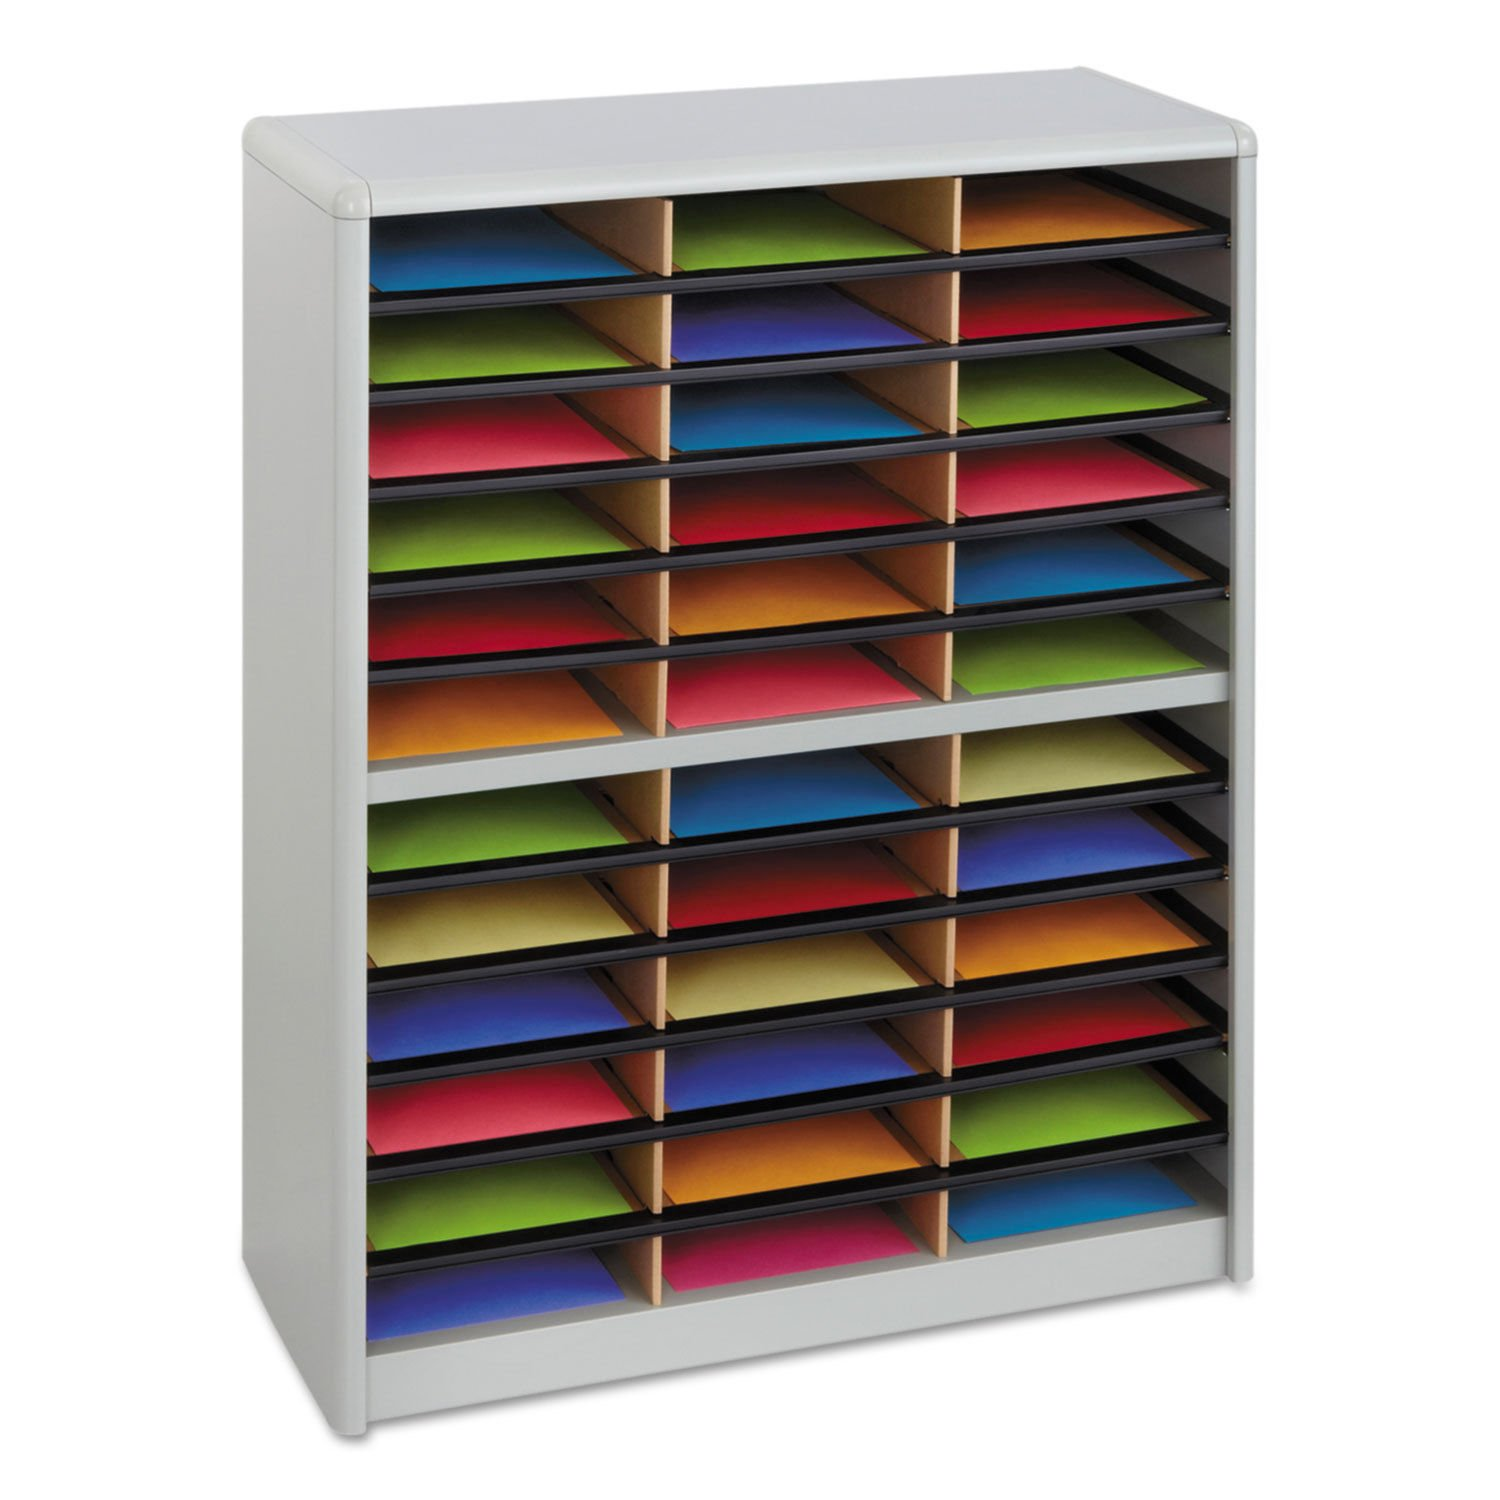 7121GR Value Sorter Literature Organizer, 36 Compartment, Gray NEW by Magic Tech